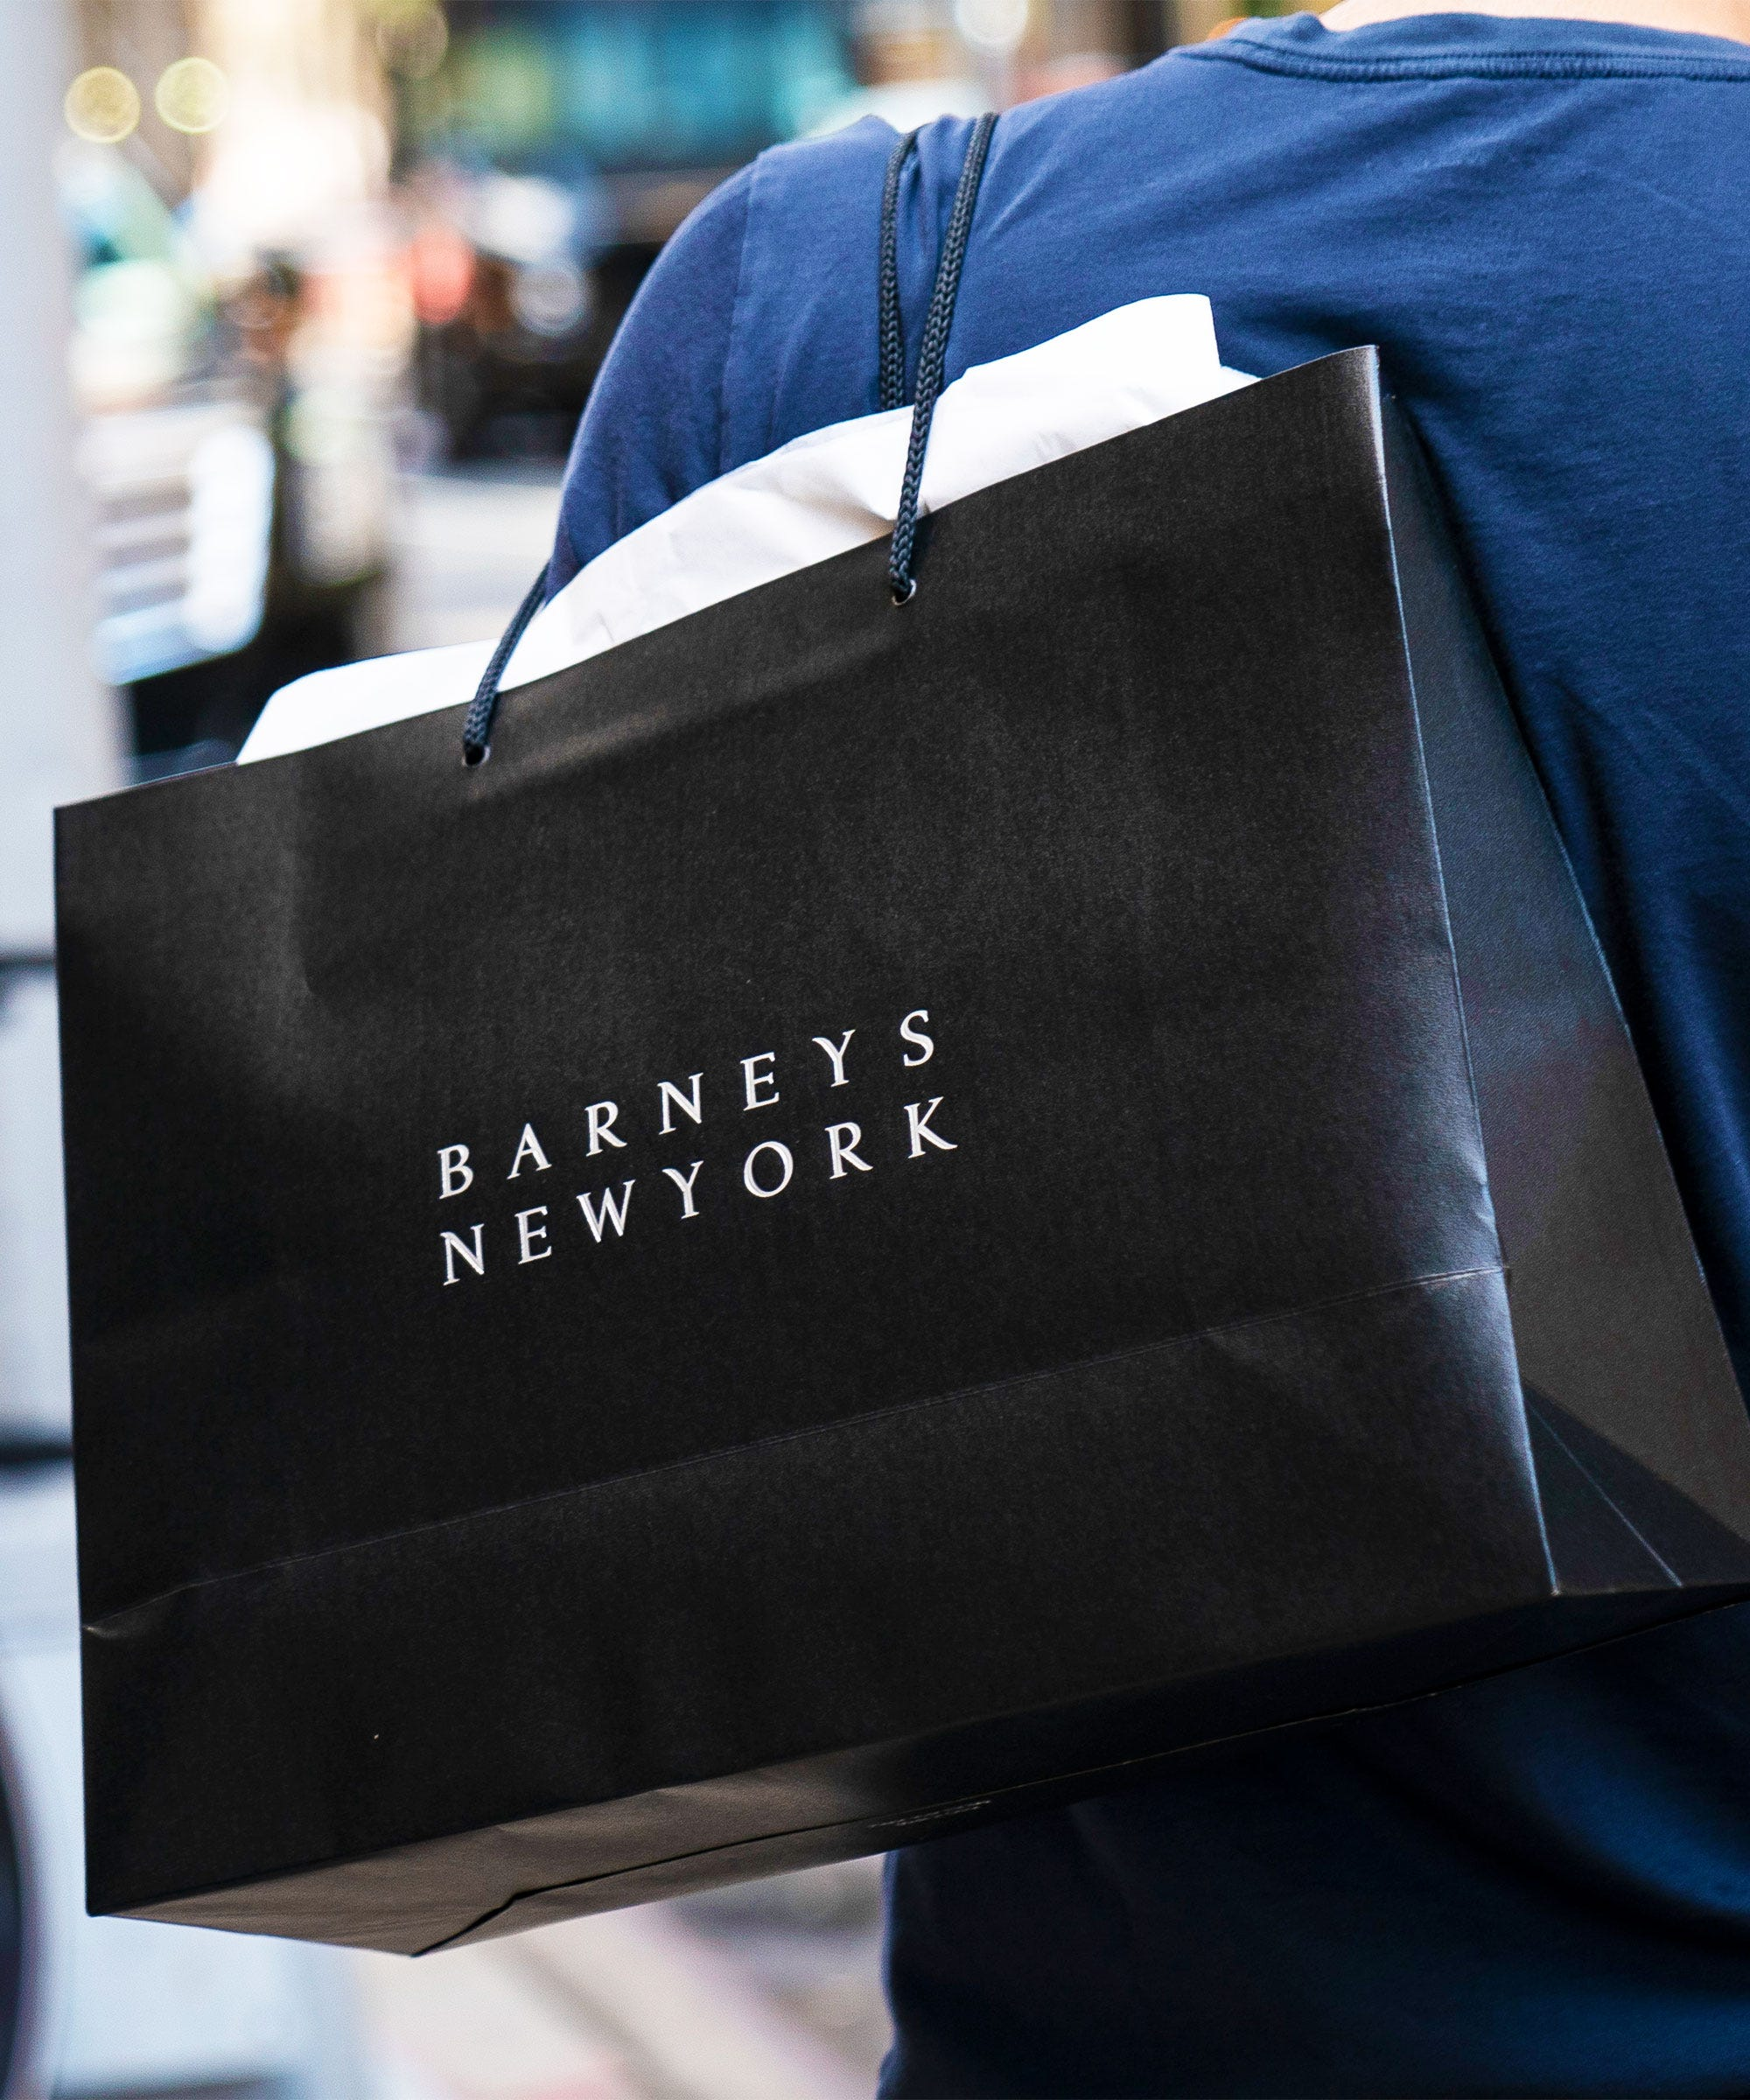 Barneys New York Reportedly Preparing To File For Bankruptcy